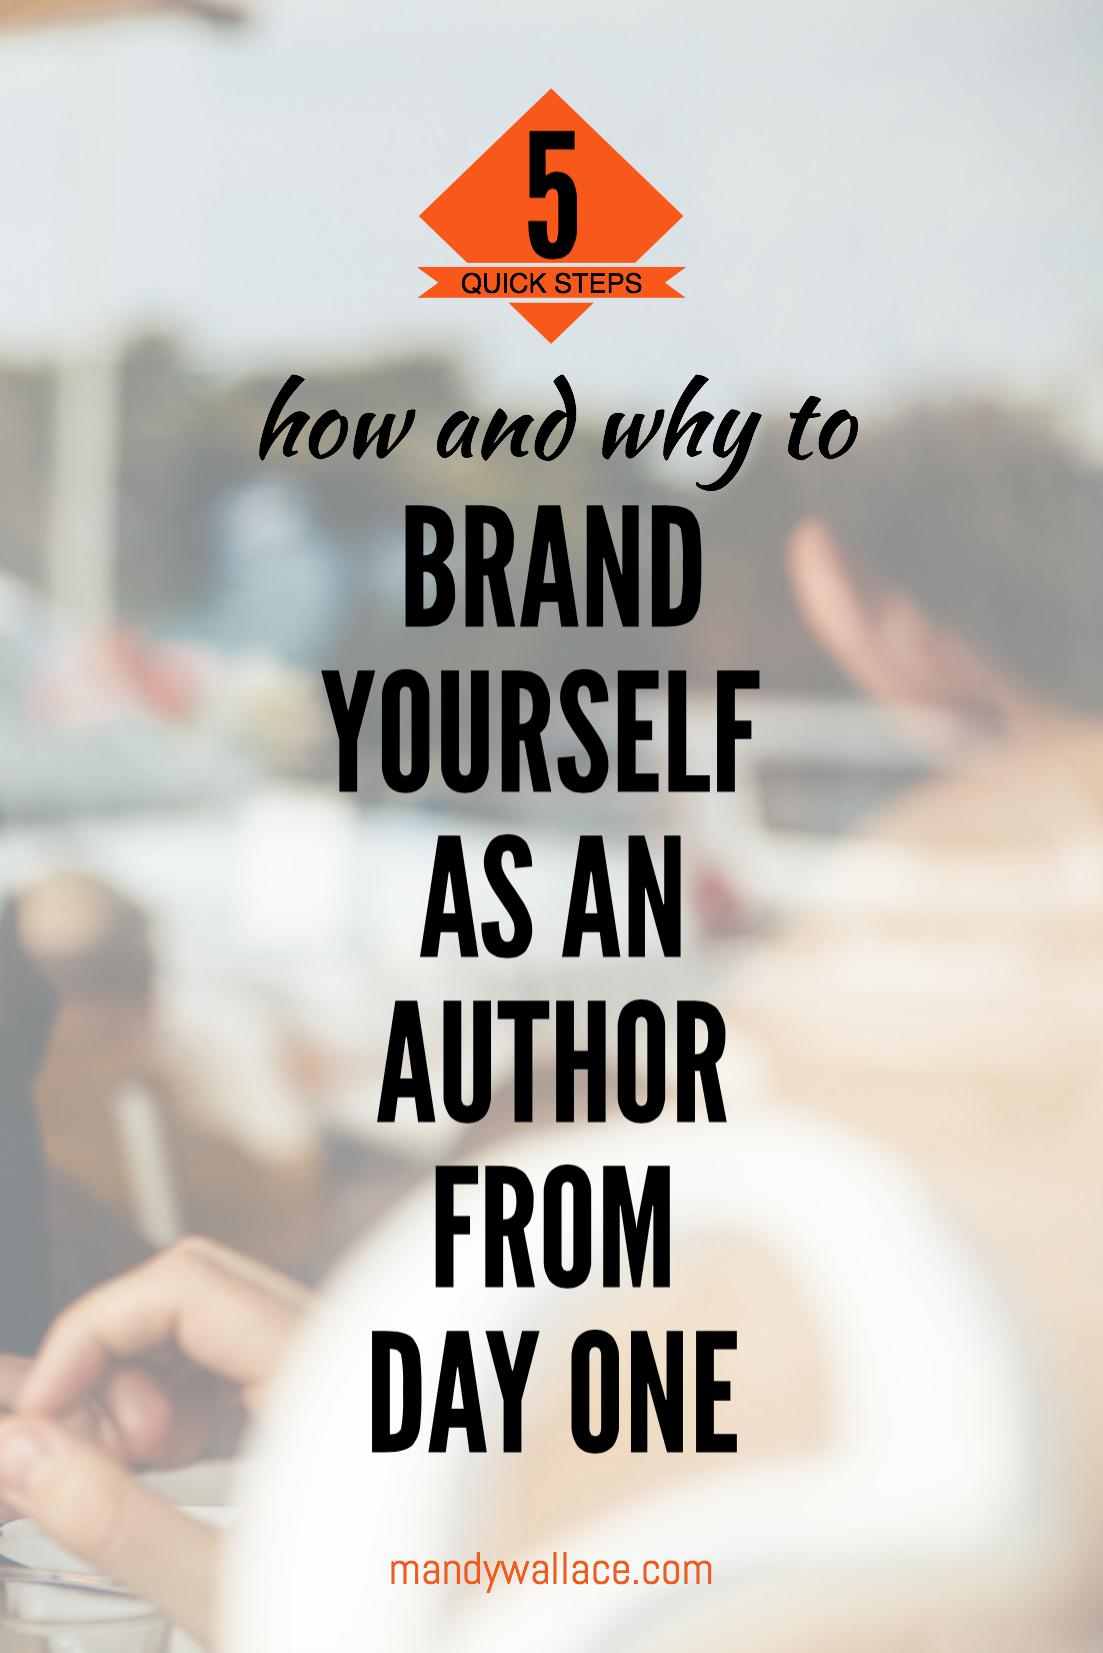 How and Why To Brand Yourself as an Author in 5 Quick Steps